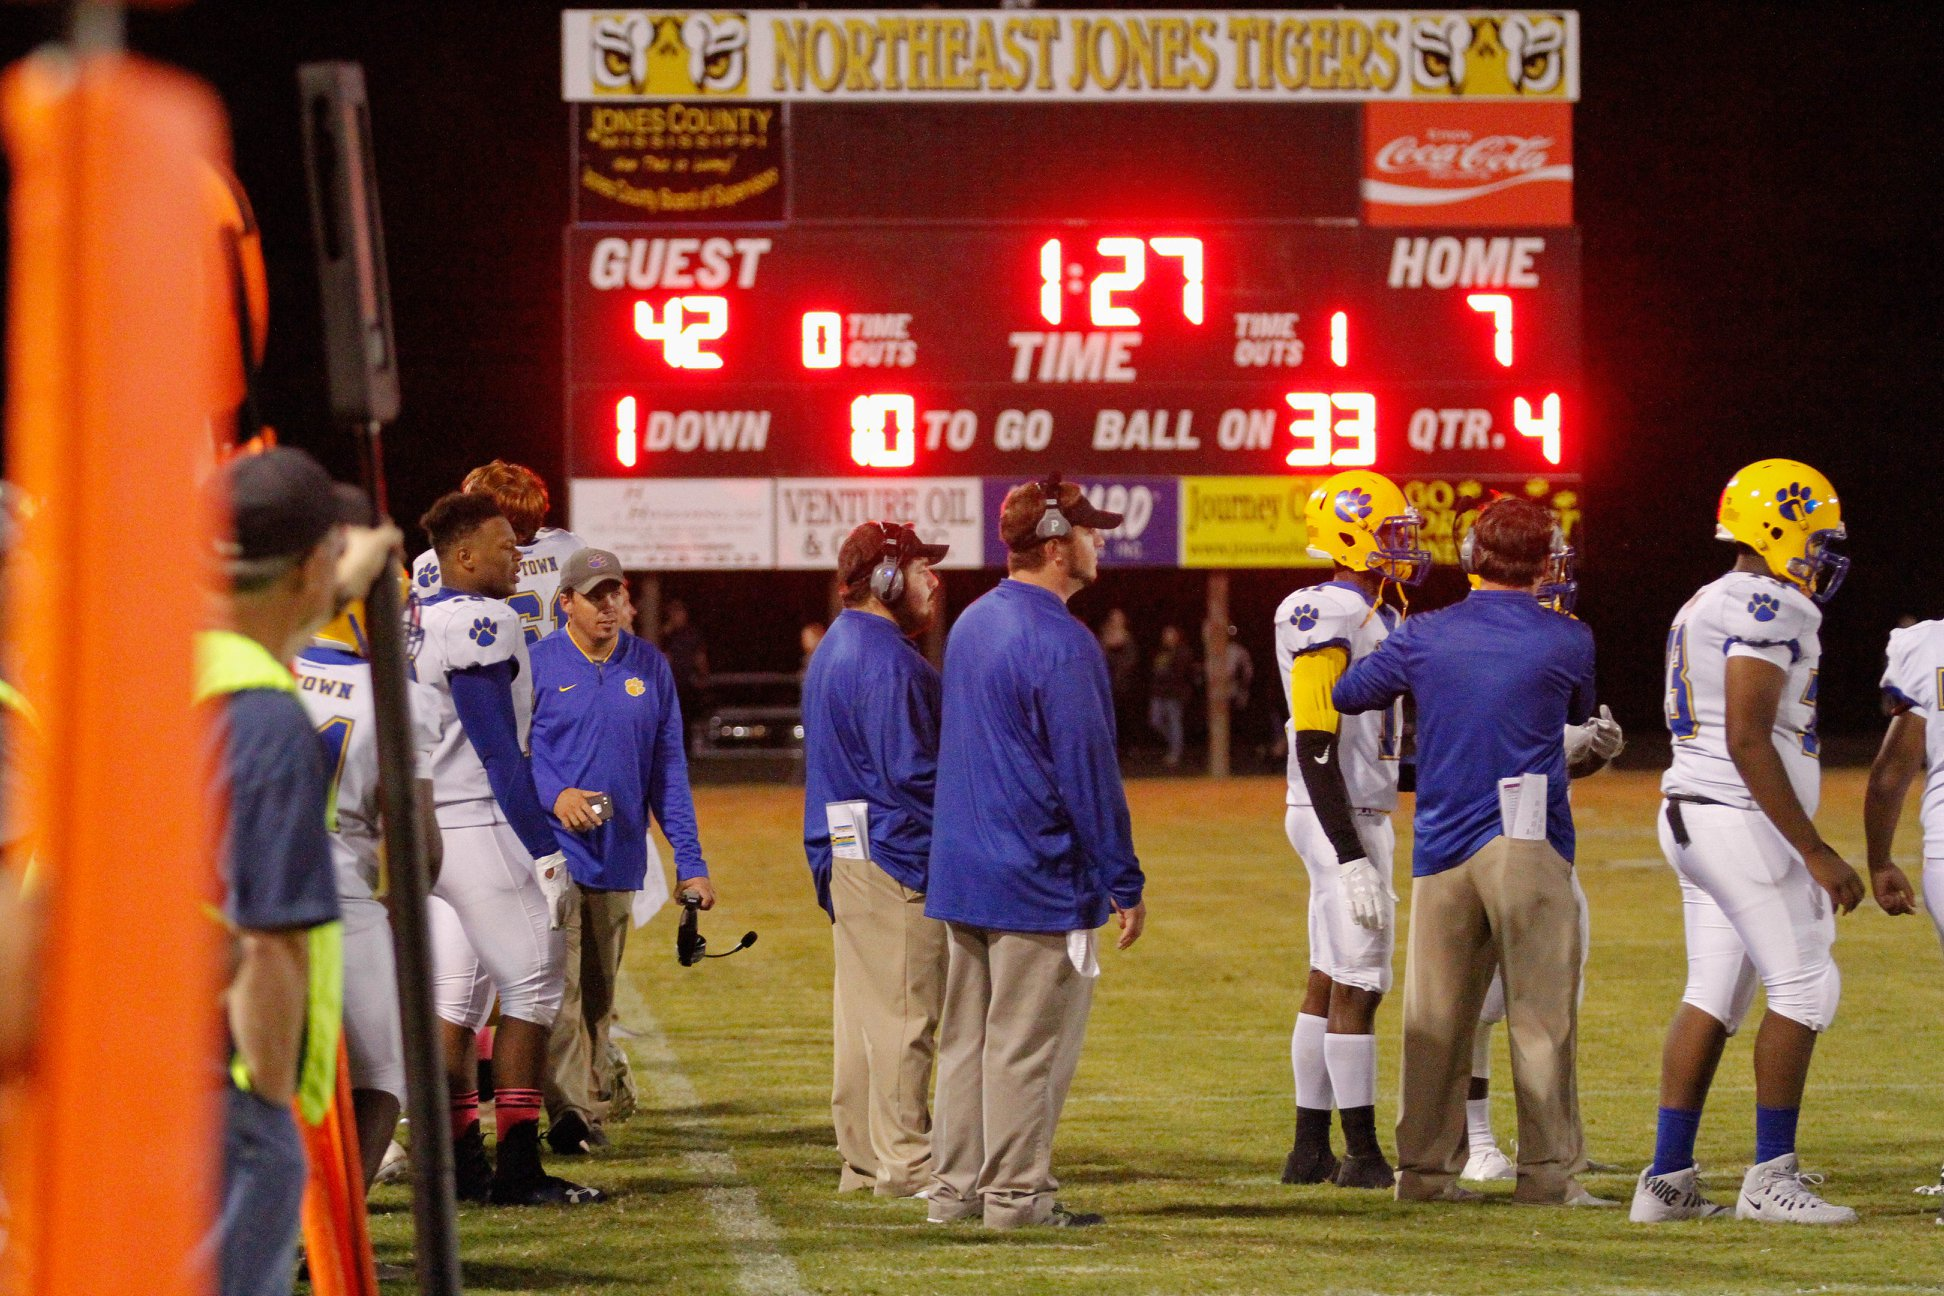 Panther players in front of the scoreboard at NE Jones.